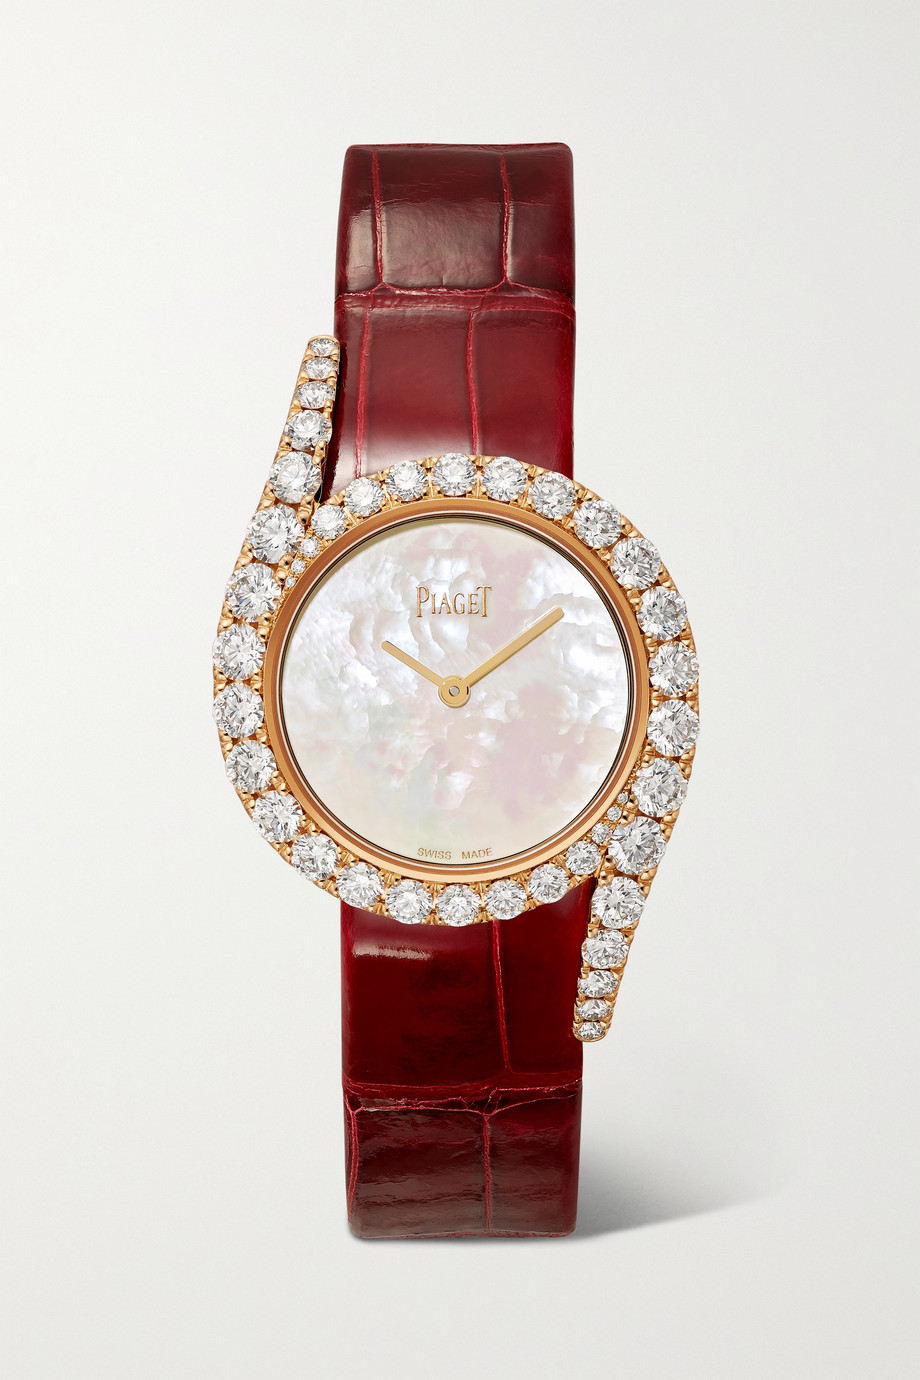 Piaget Montre en or rose 18 carats et diamants à bracelet en alligator Limelight Gala 32 mm